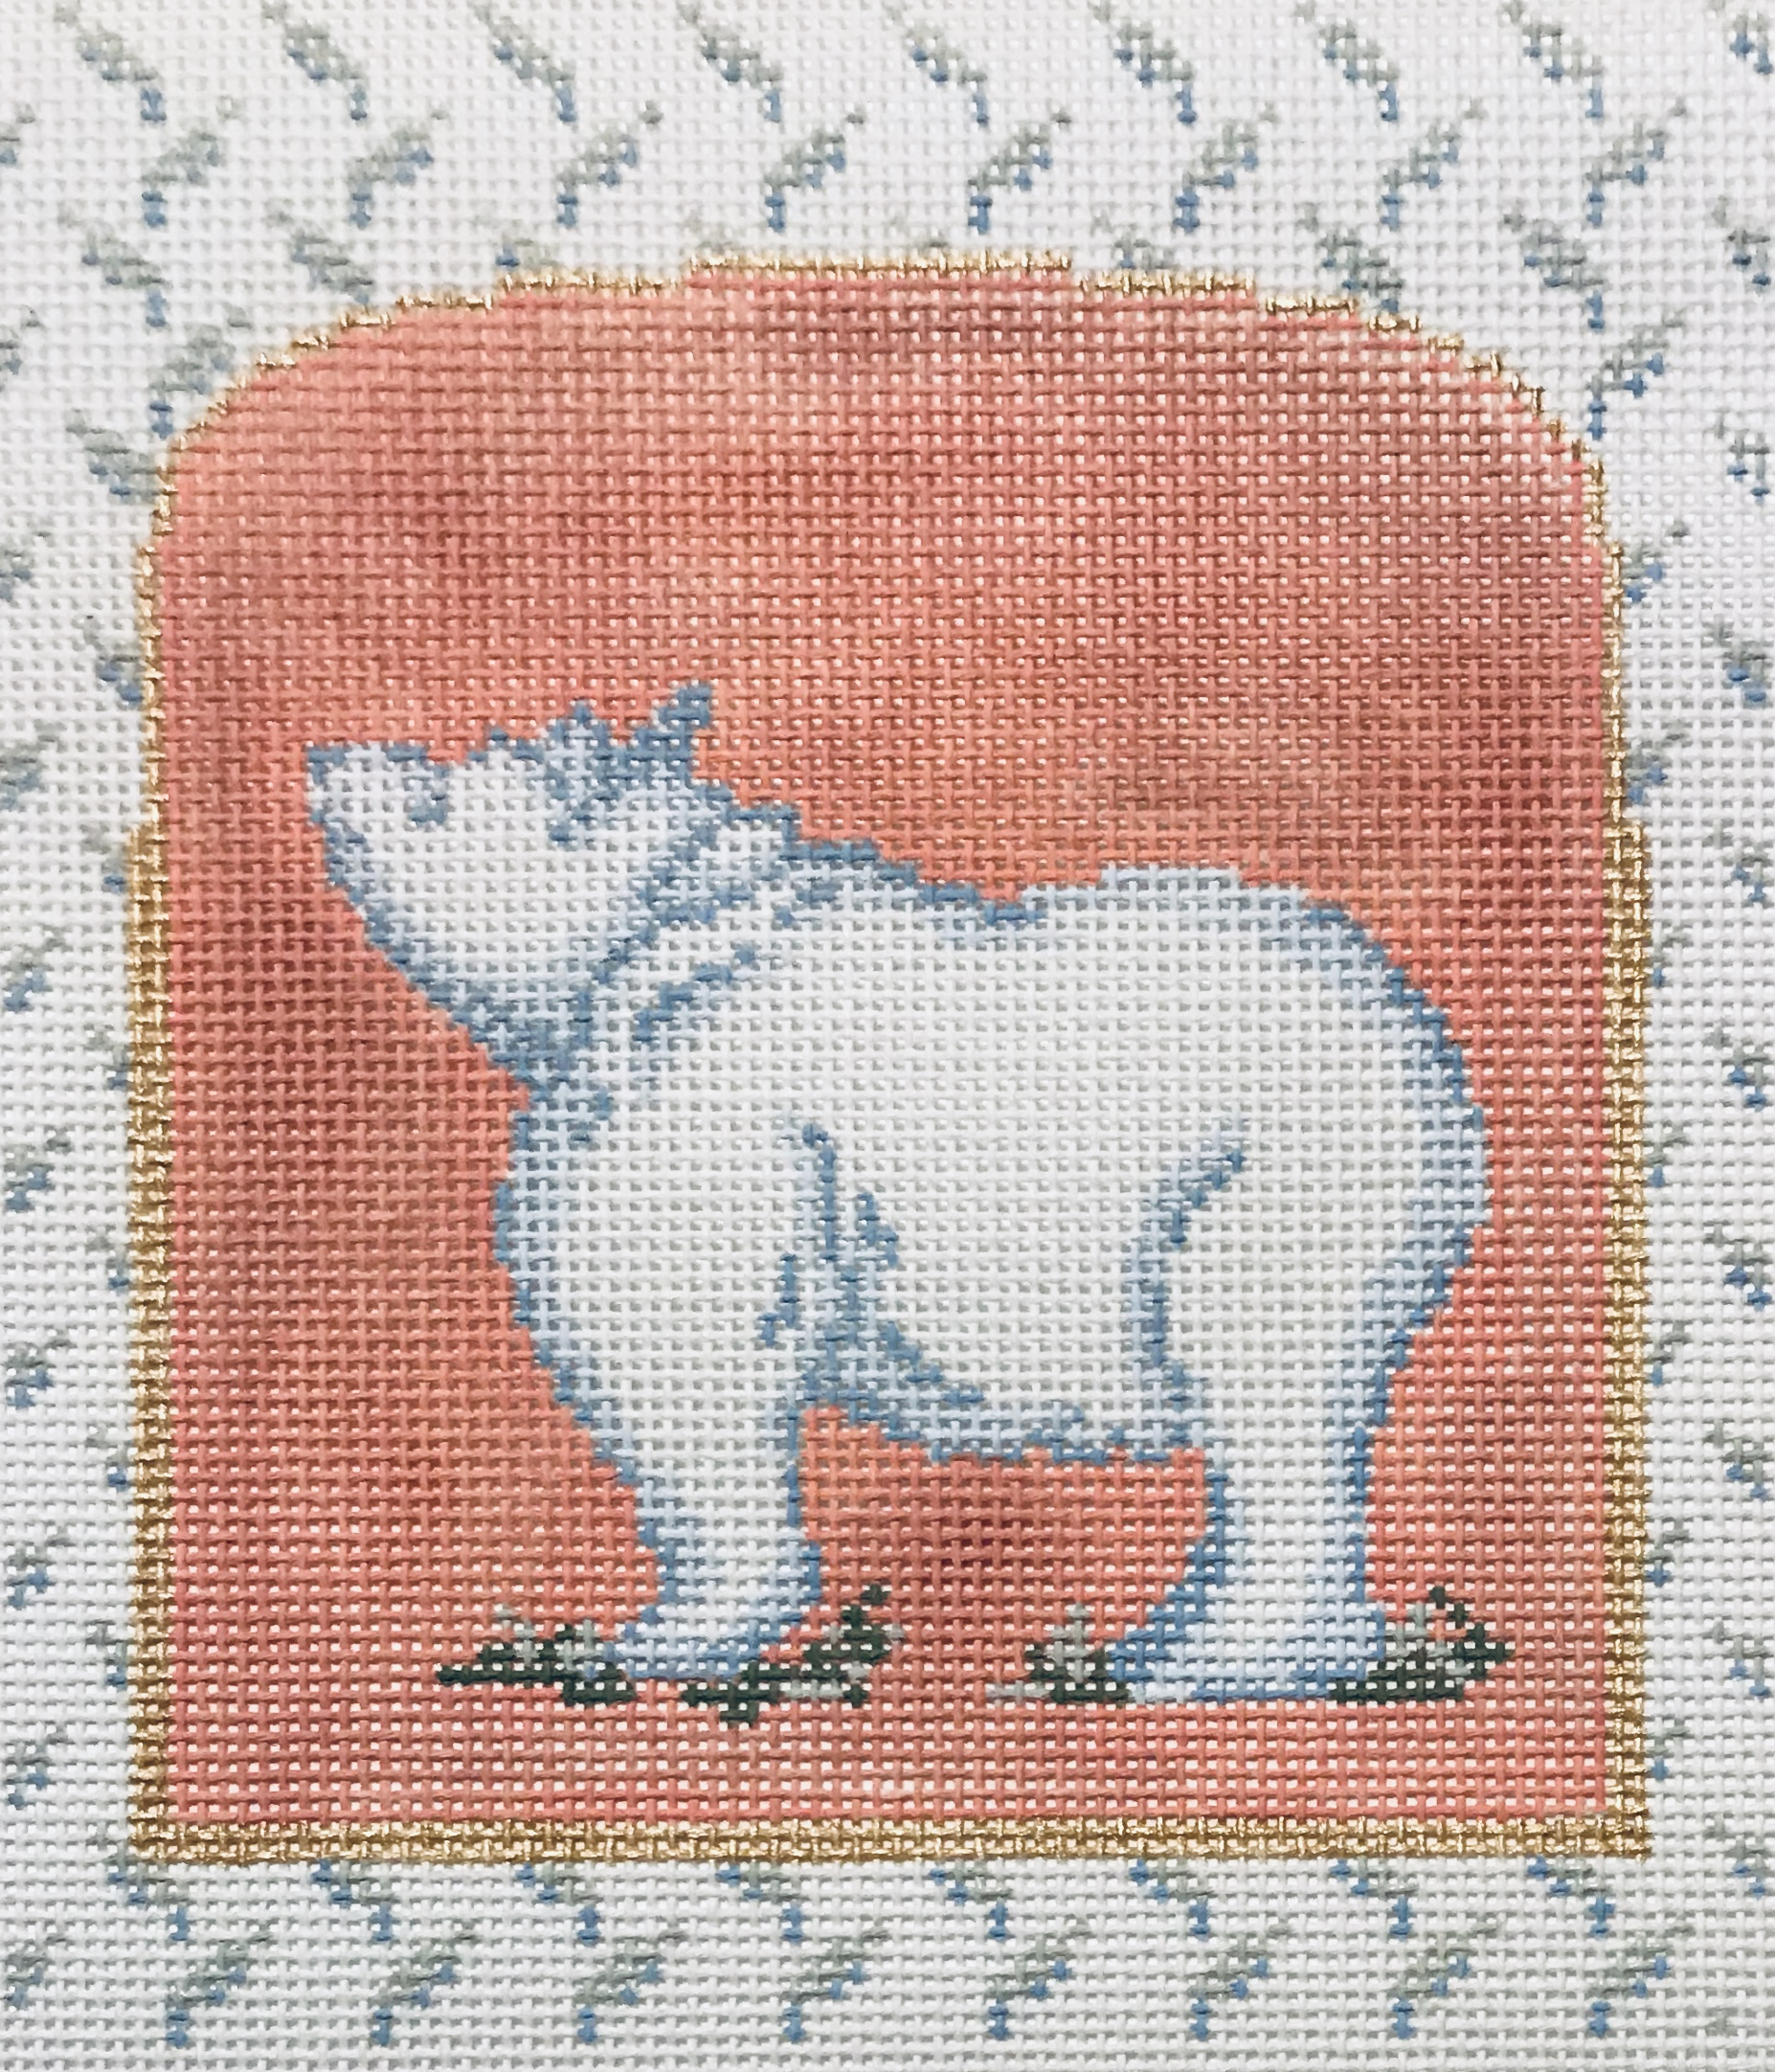 "Mother Nature Series - Bear 15BBB-2   5.5"" x 5"" on 18 mesh"